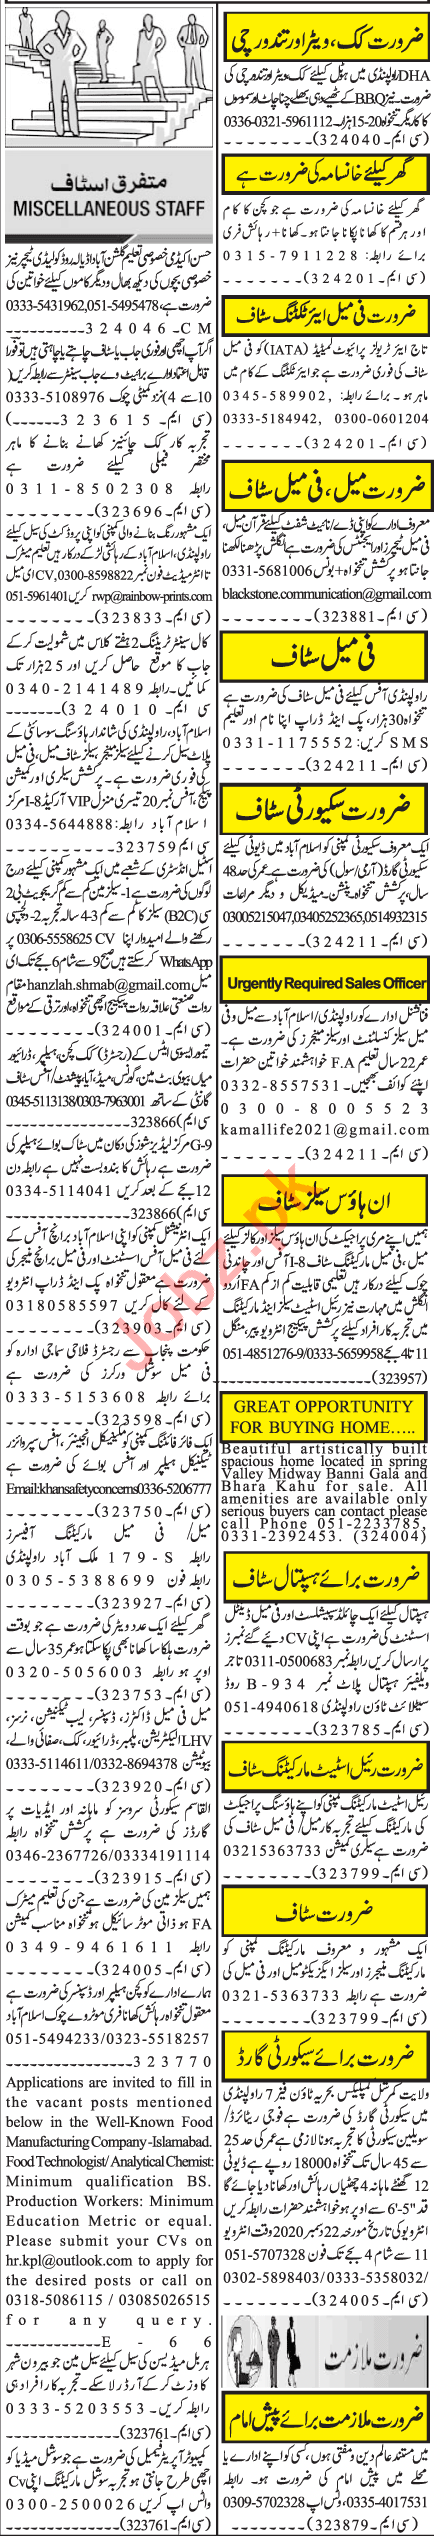 Jang Sunday Classified Ads 20 Dec 2020 for General Staff